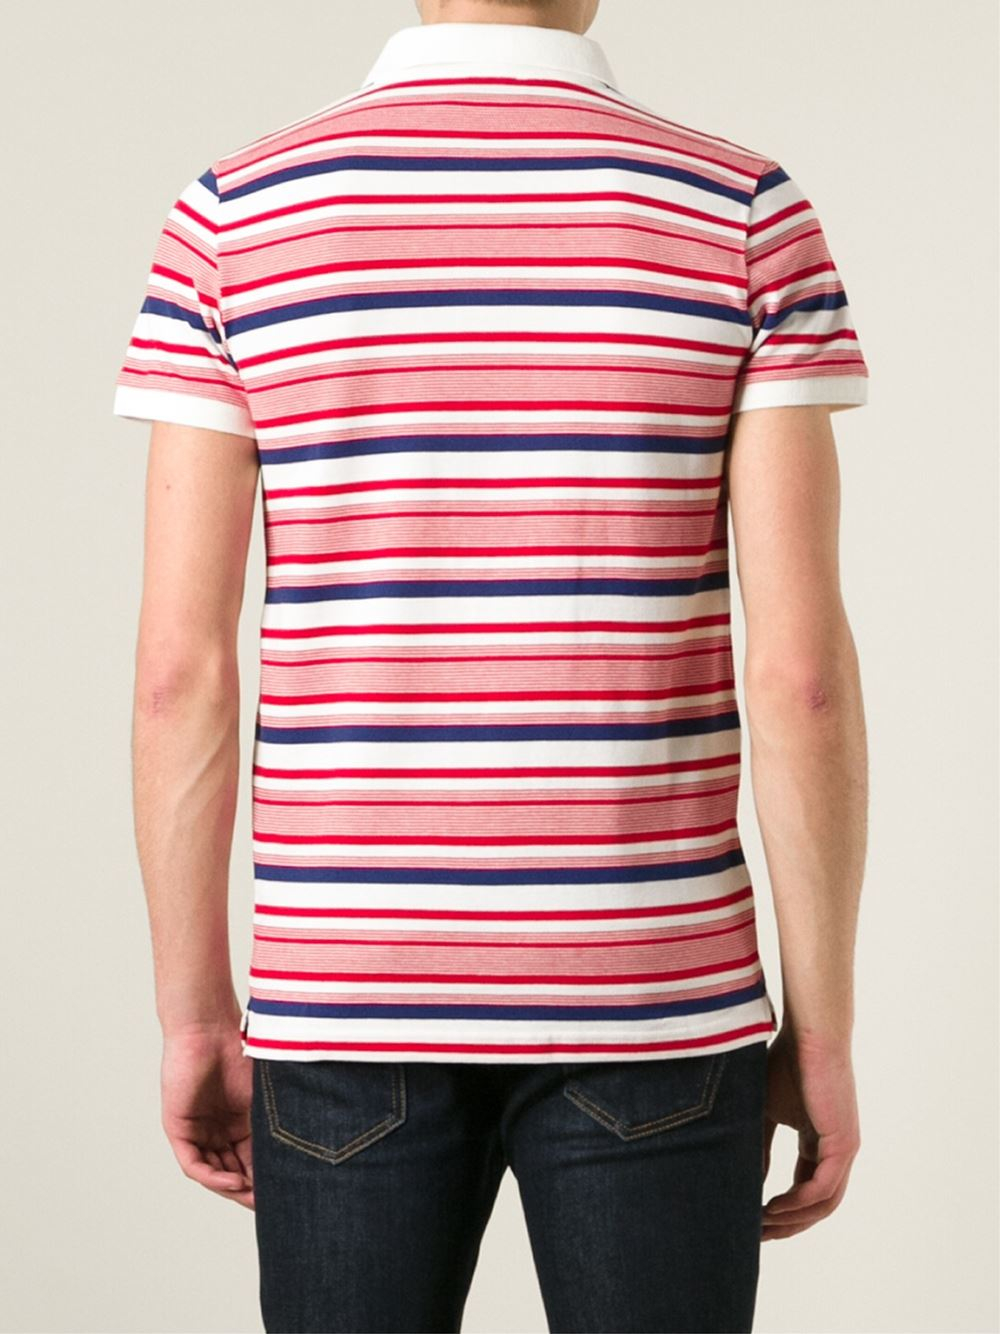 Maison Kitsuné Striped Polo Shirt in White (Pink) for Men